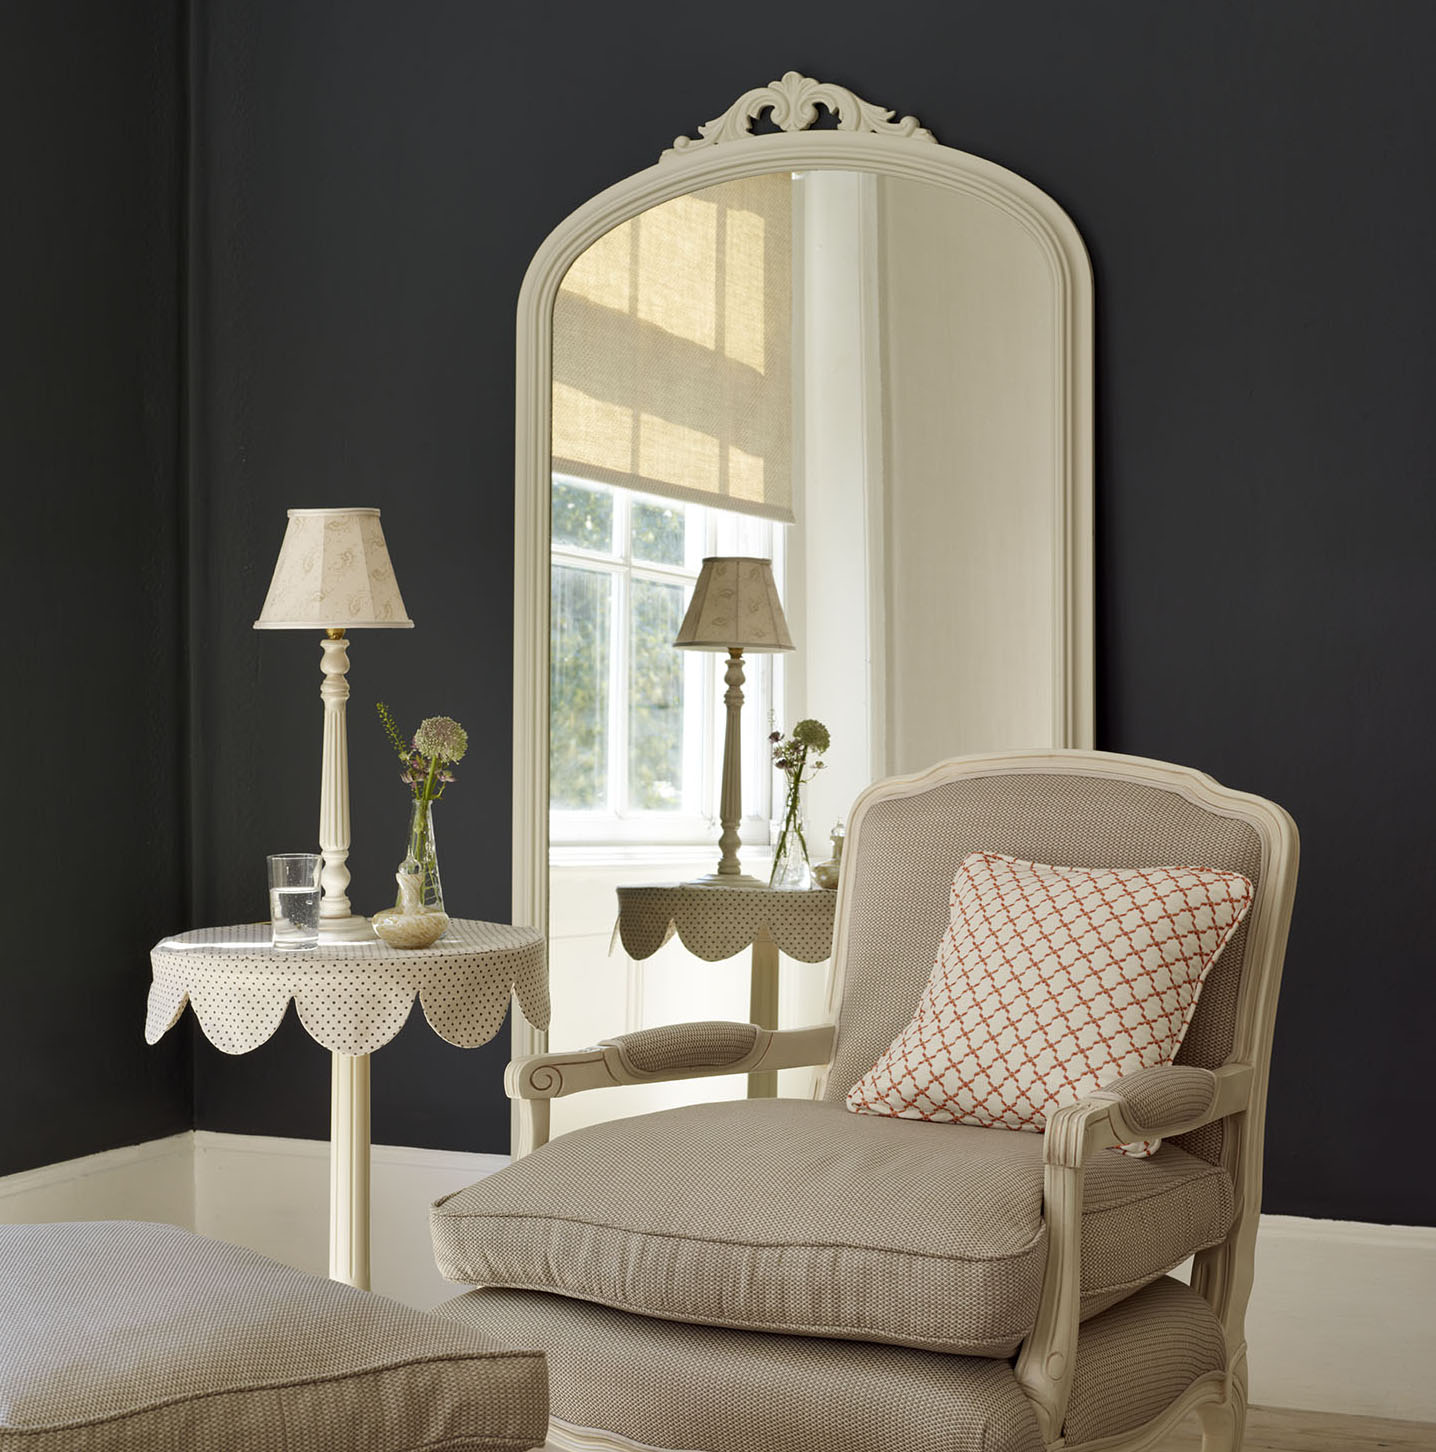 Astonishing floor length mirrors ornate ornament mirror frame can be place at your beautiful bedroom Ideas